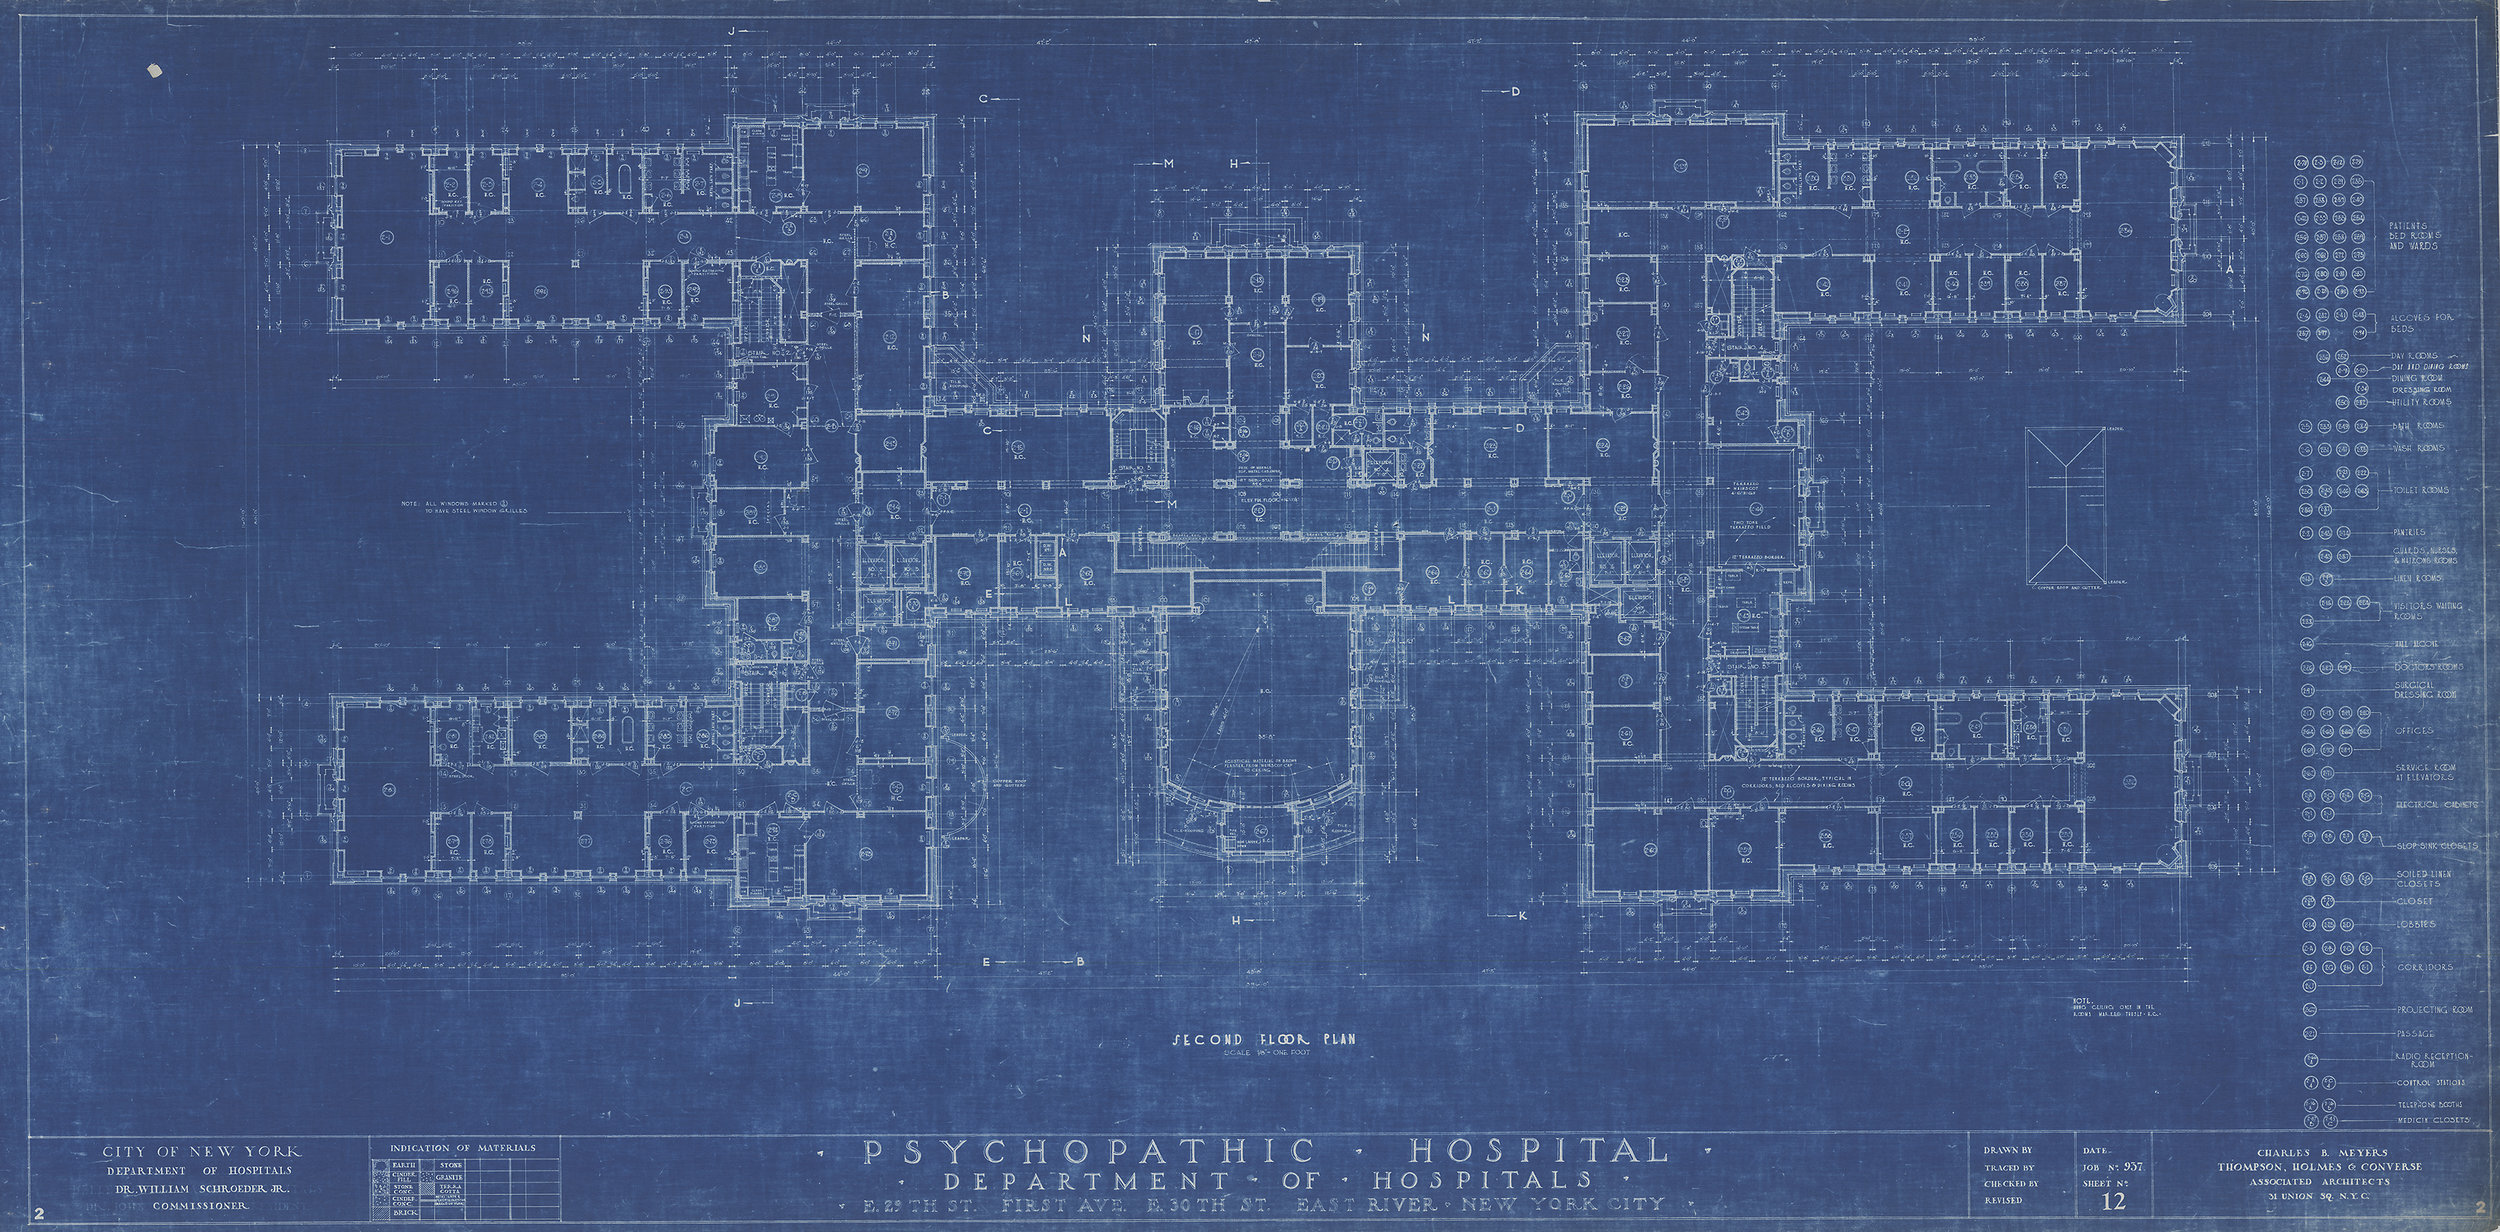 Second Floor Plan, Psychopathic Hospital, East 29th Street & First Avenue. Charles B. Meyers Architect. Department of Buildings Collection, NYC Municipal Archives.